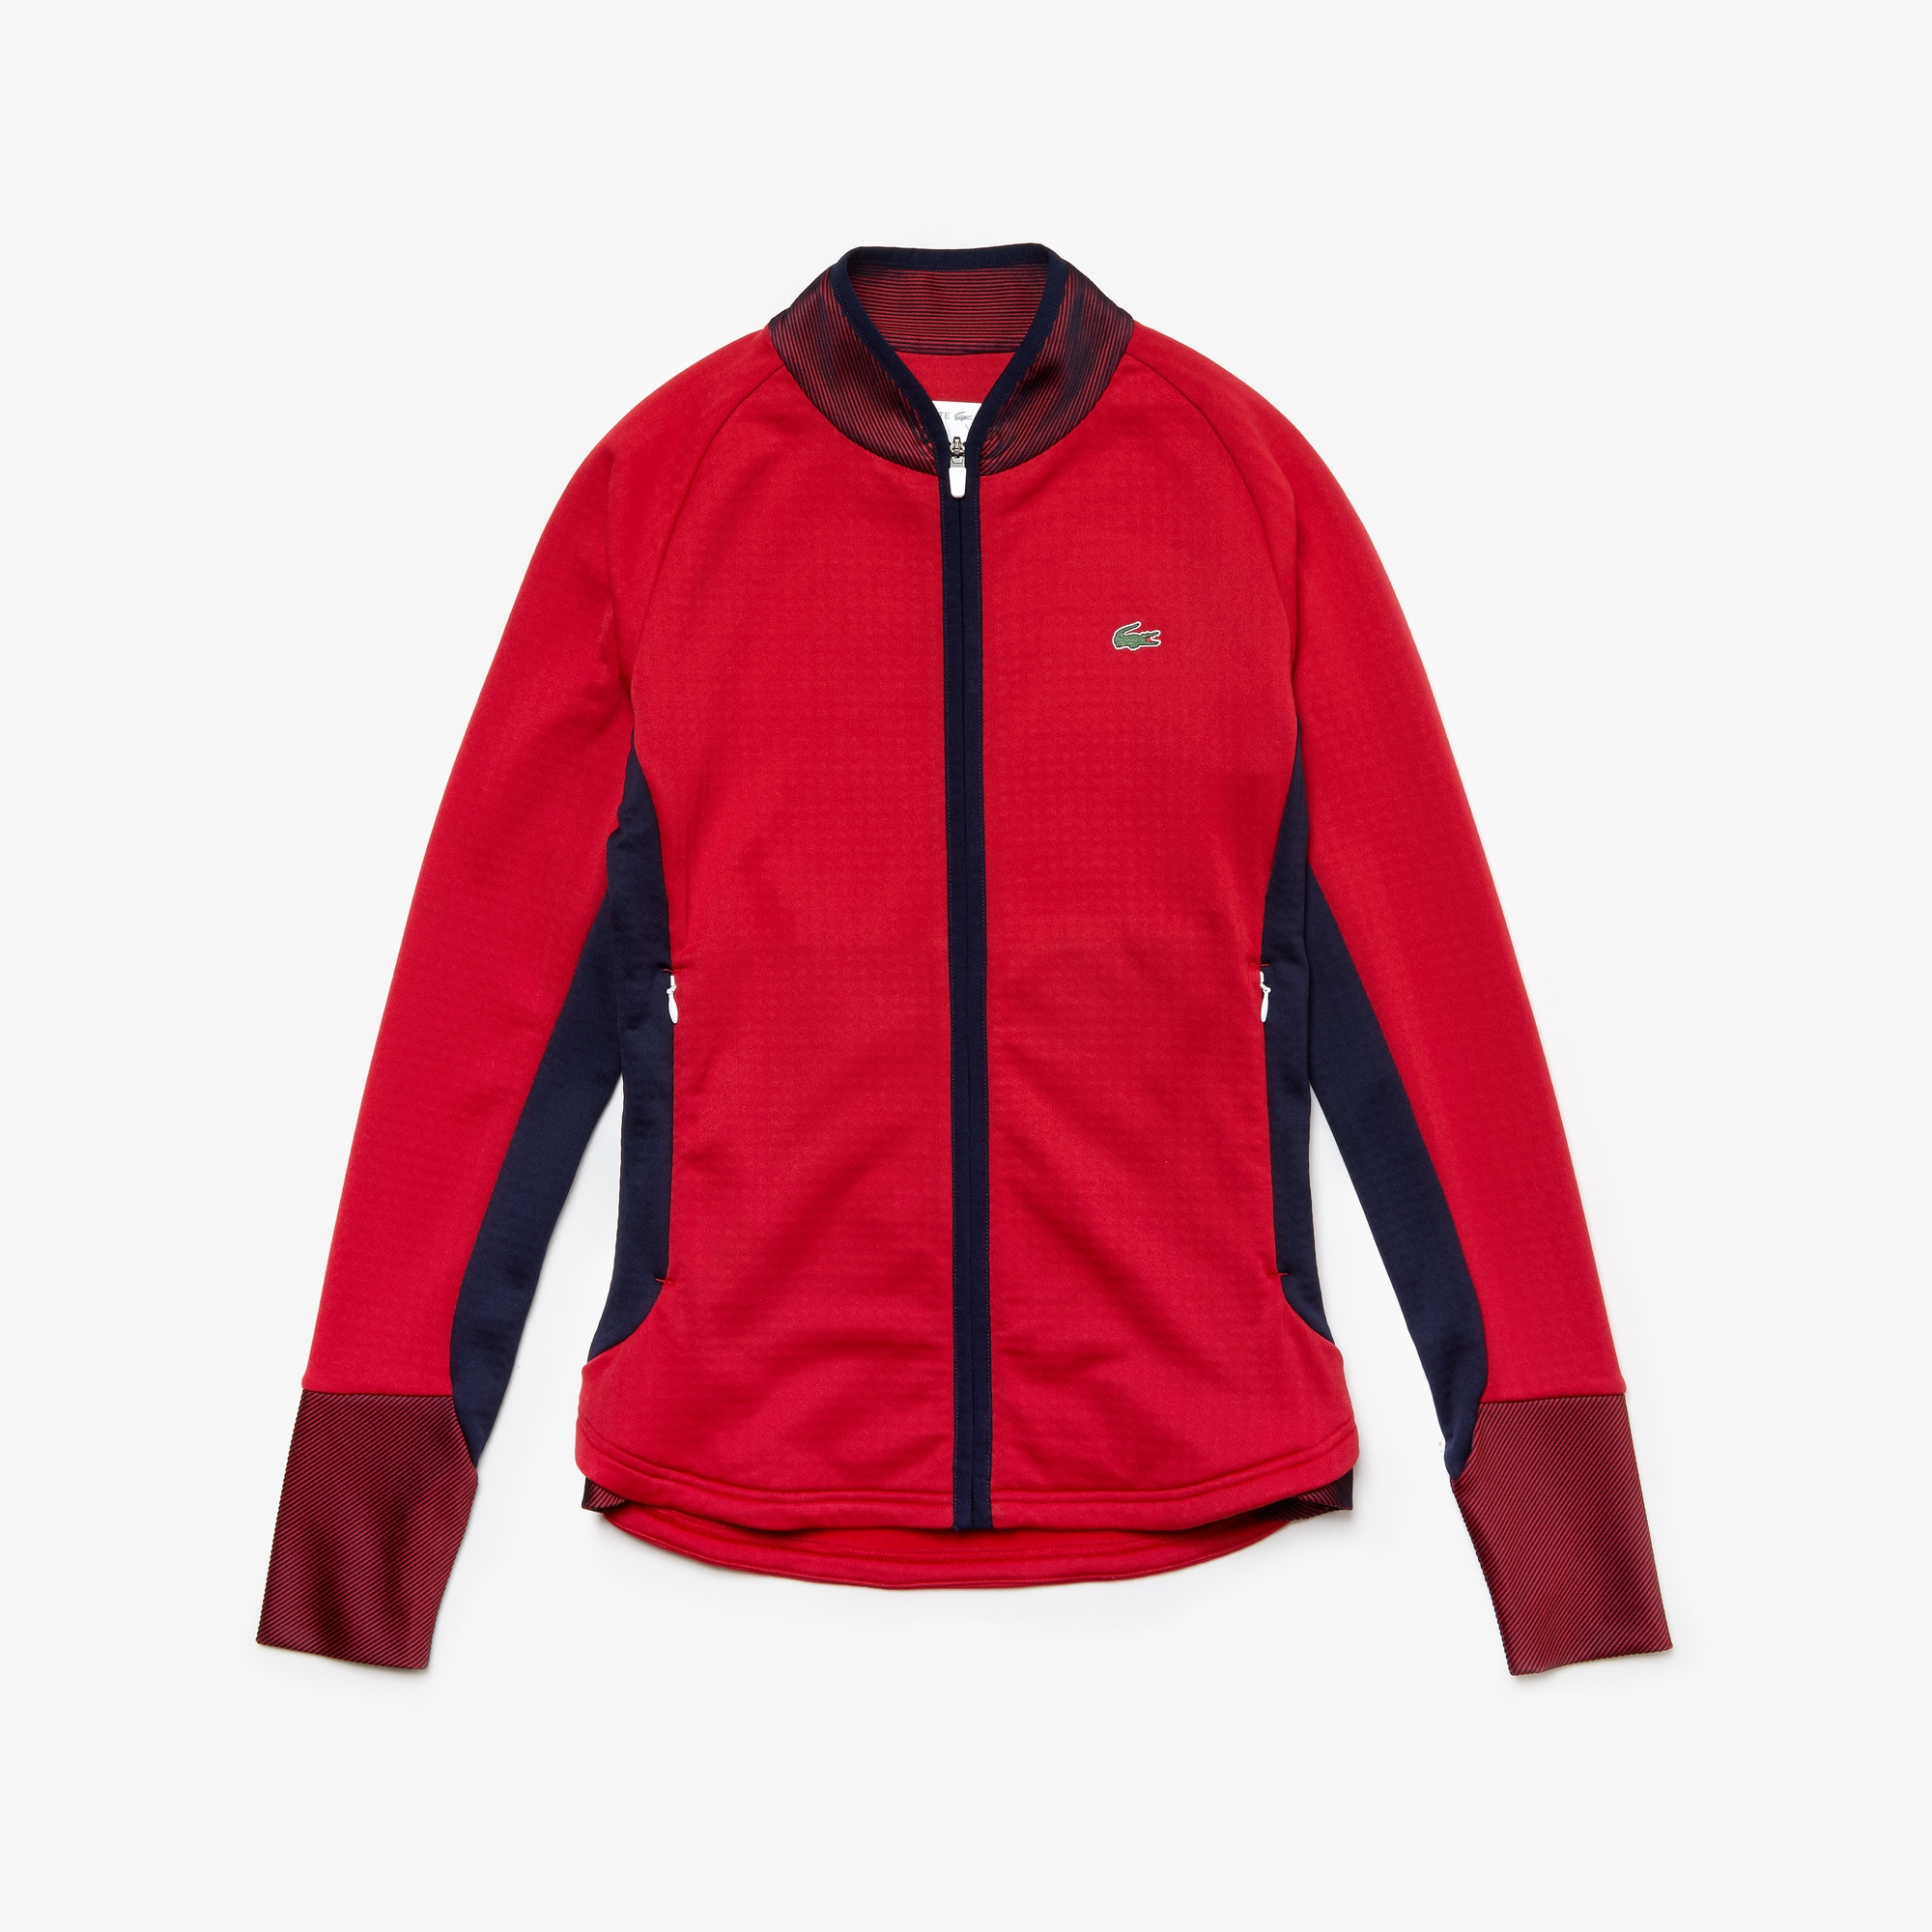 Women's Lacoste SPORT Breathable Stretch Bi material Zip Golf Jacket